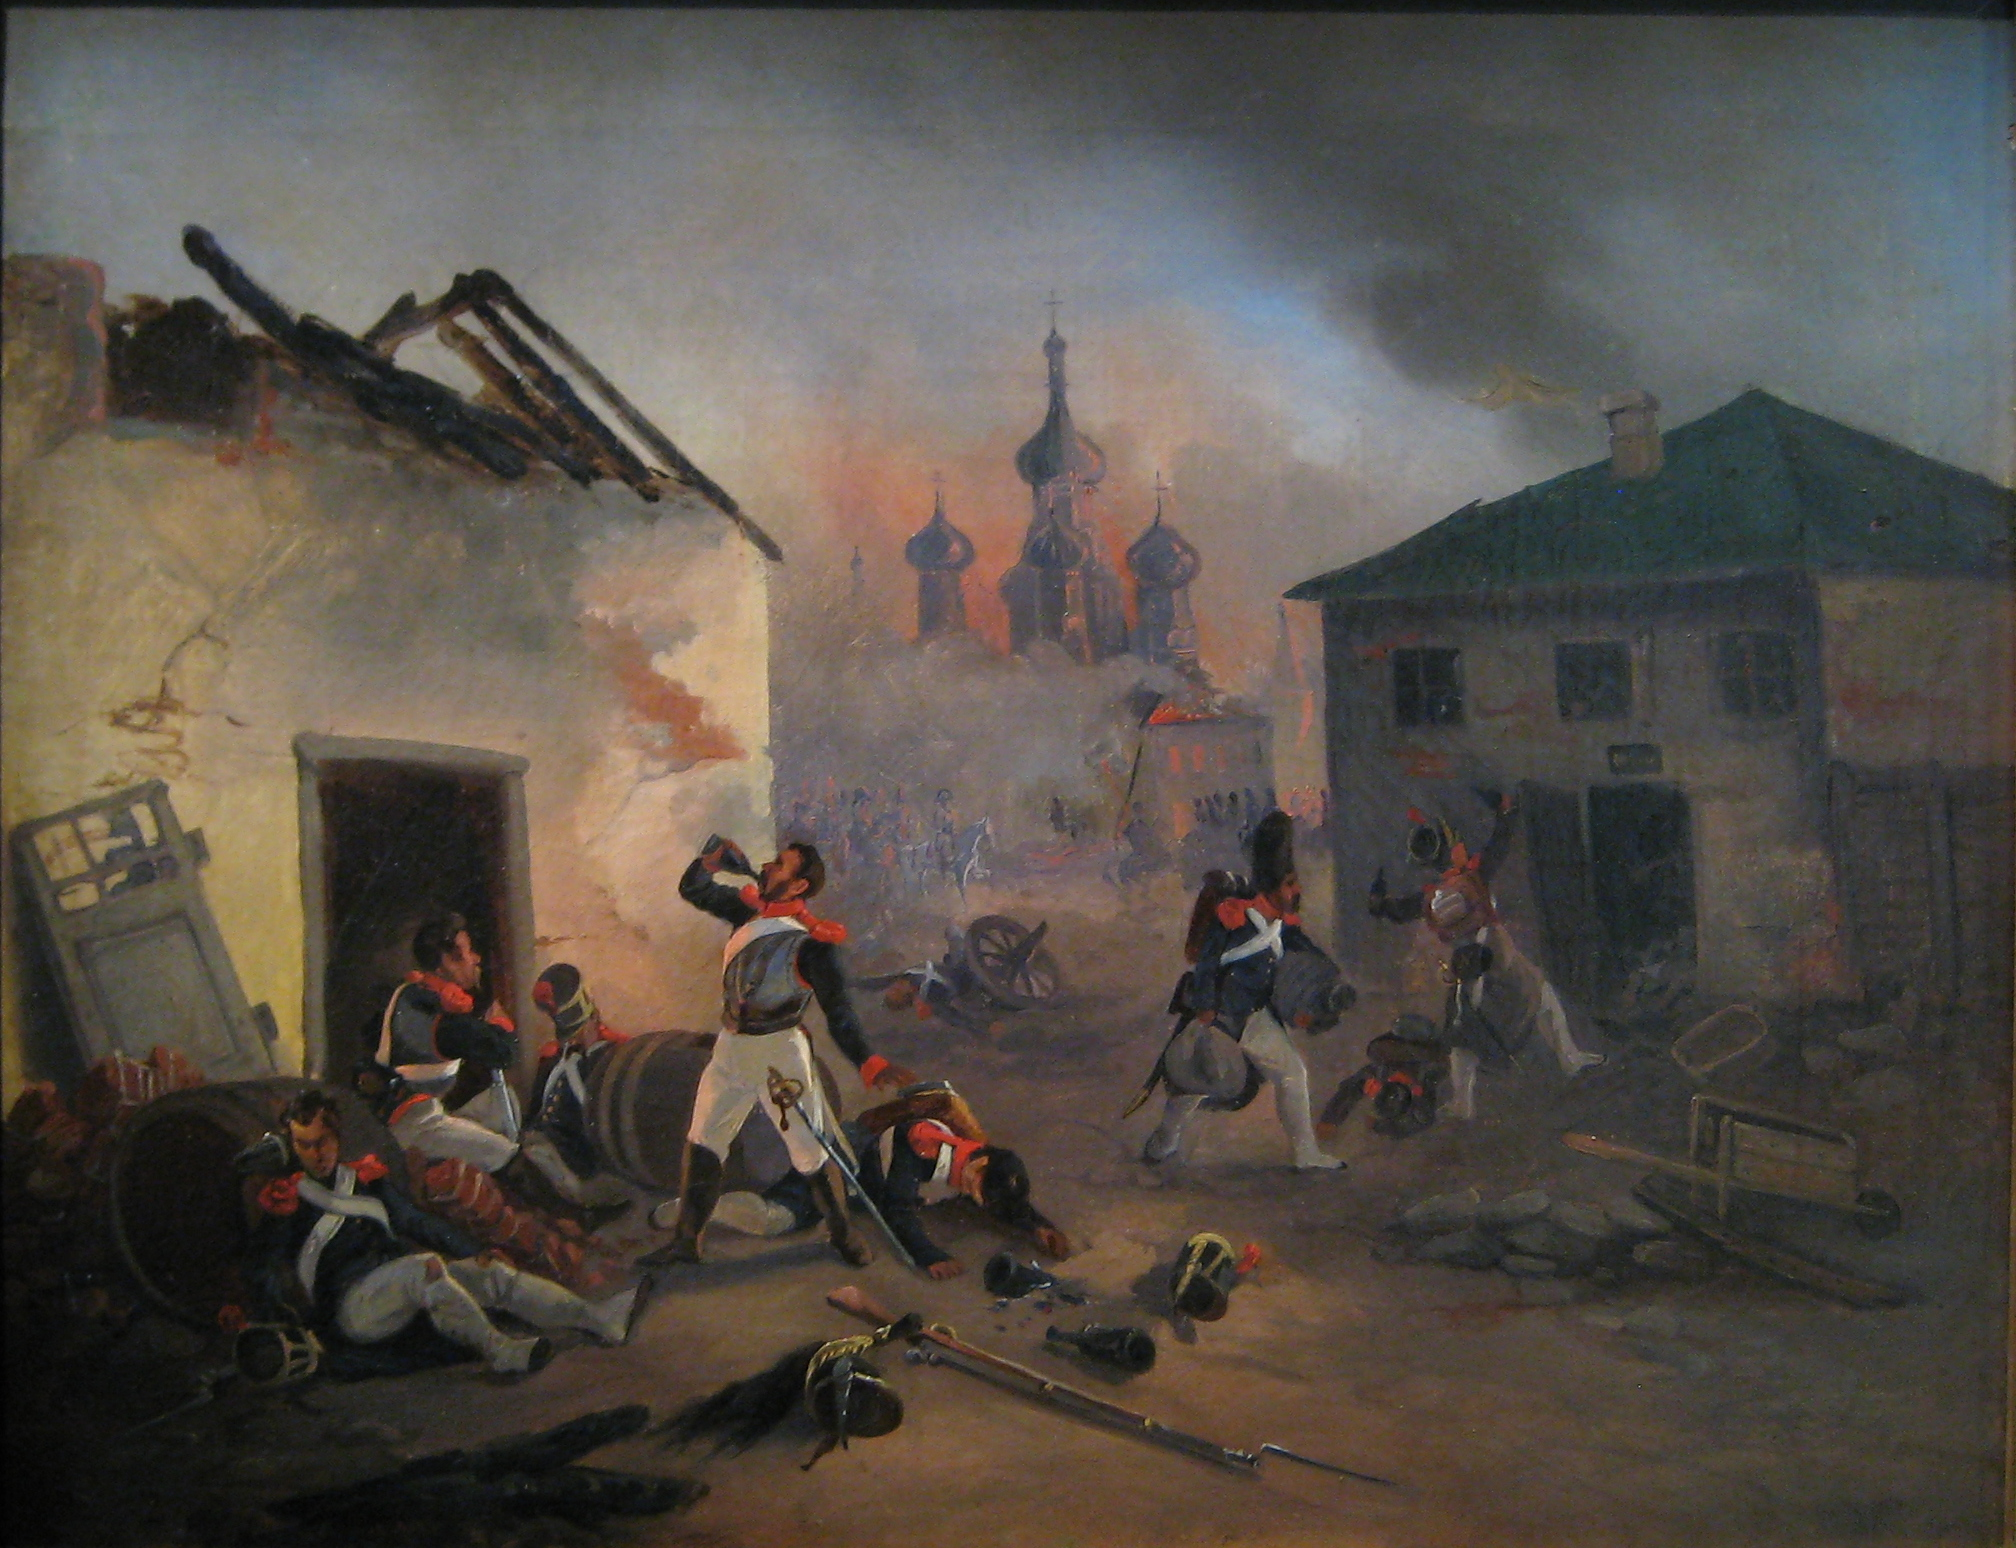 File:Moscow fire (1812) French soldiers drunking.jpg